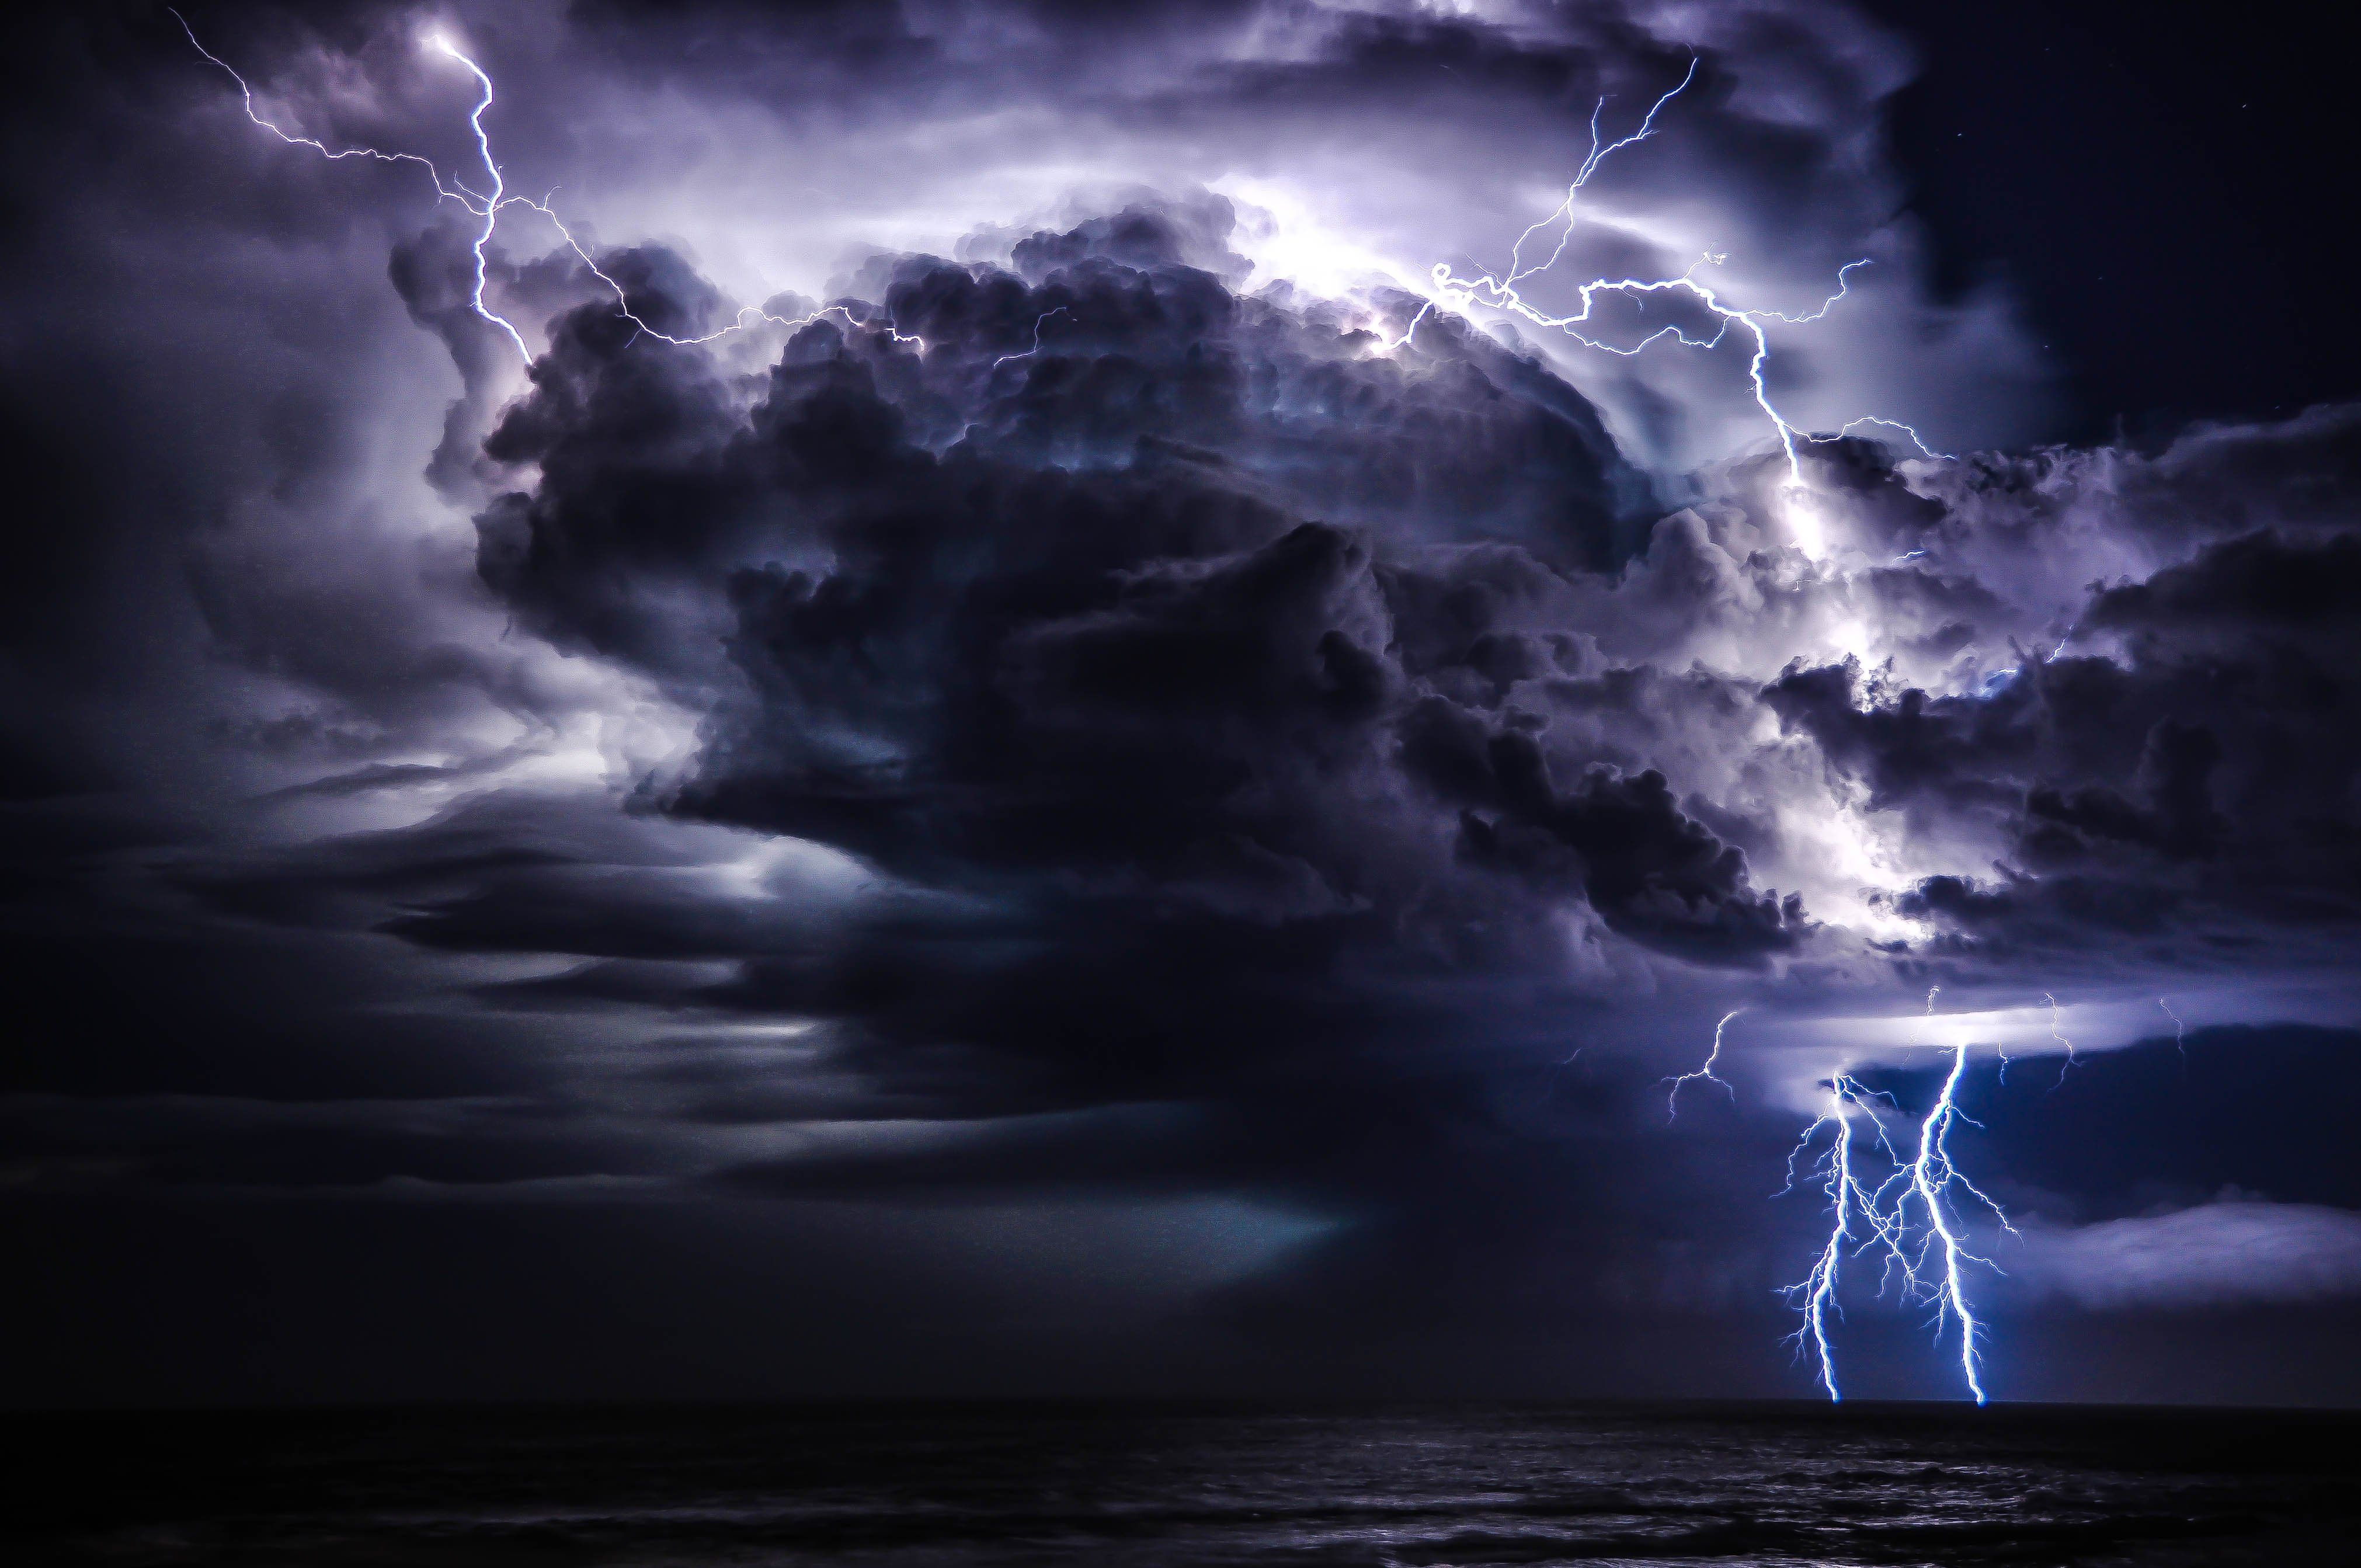 Extreme Cloud Wallpaper: Storm Weather Rain Sky Clouds Nature Lightning